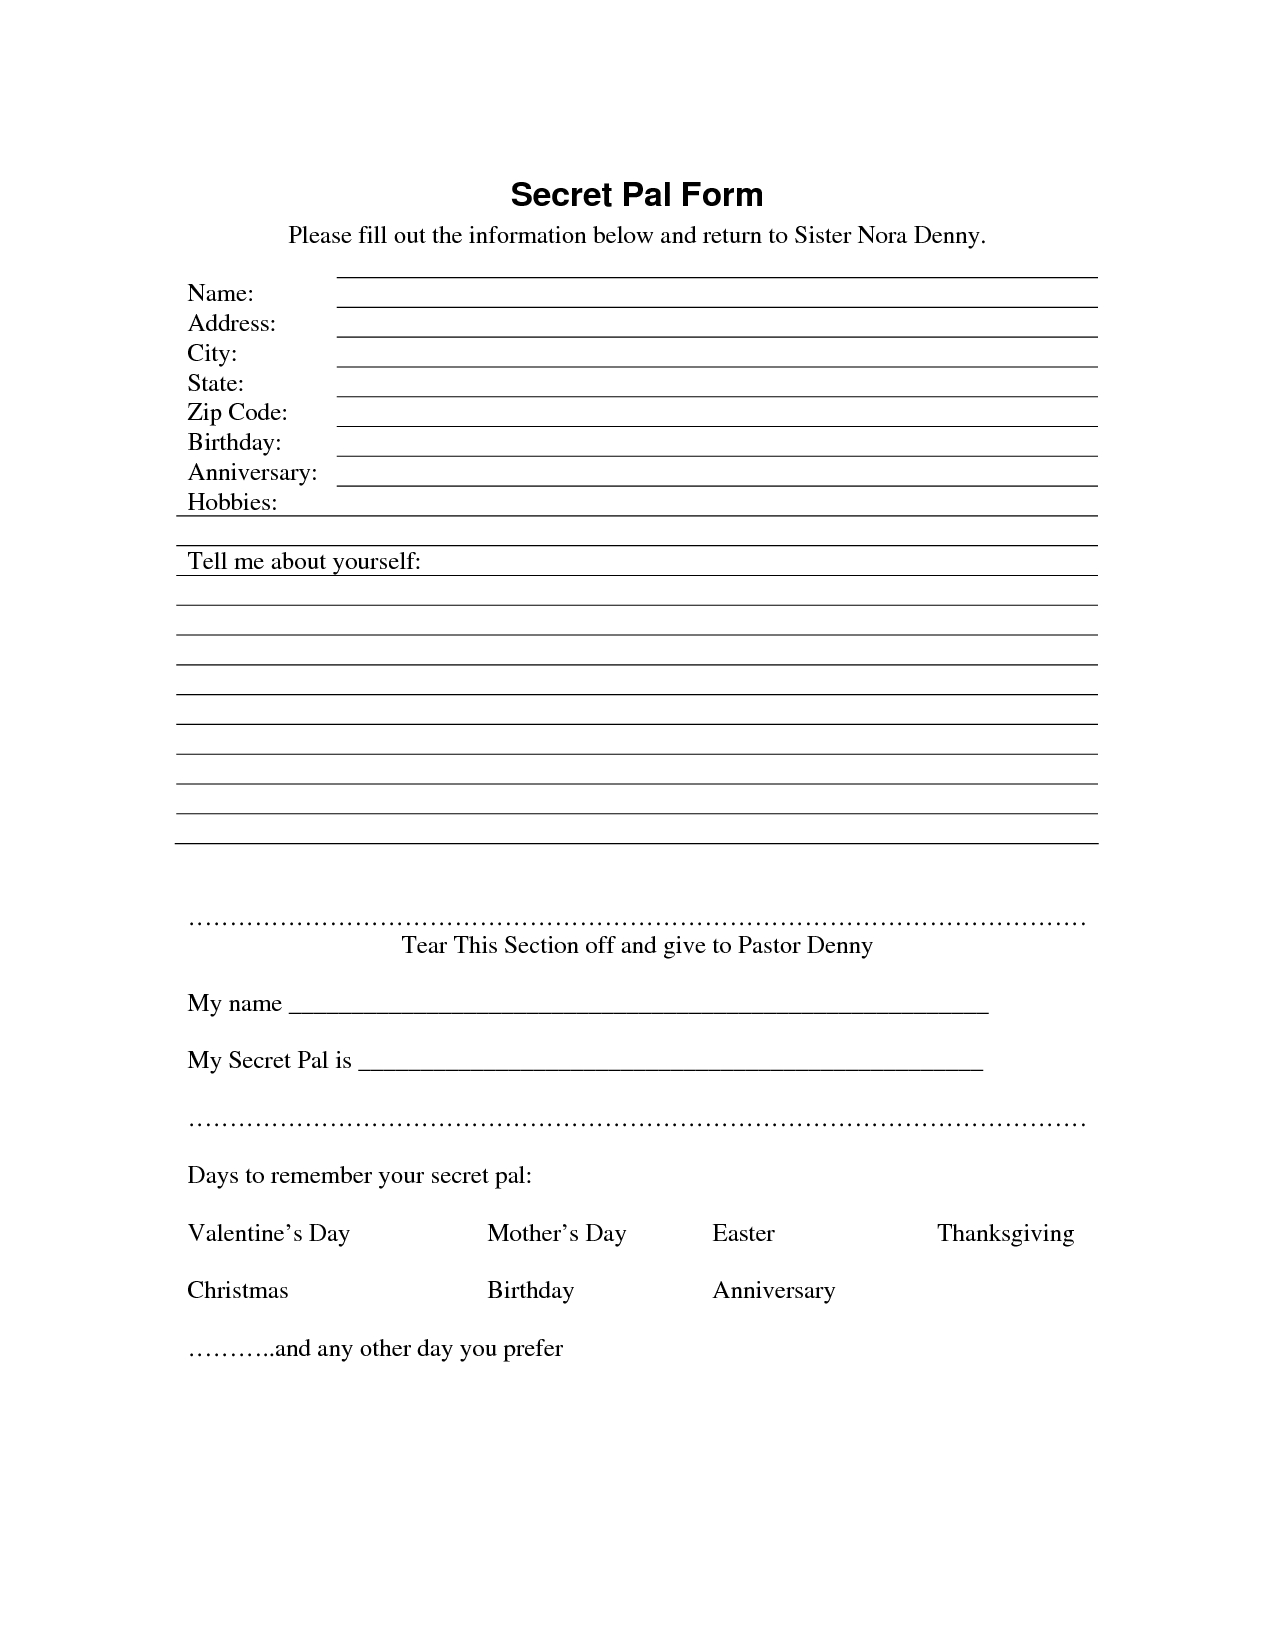 Secret Sister Questionnaire | Secret Pal Form - Download As Pdf - Free Printable Secret Pal Forms